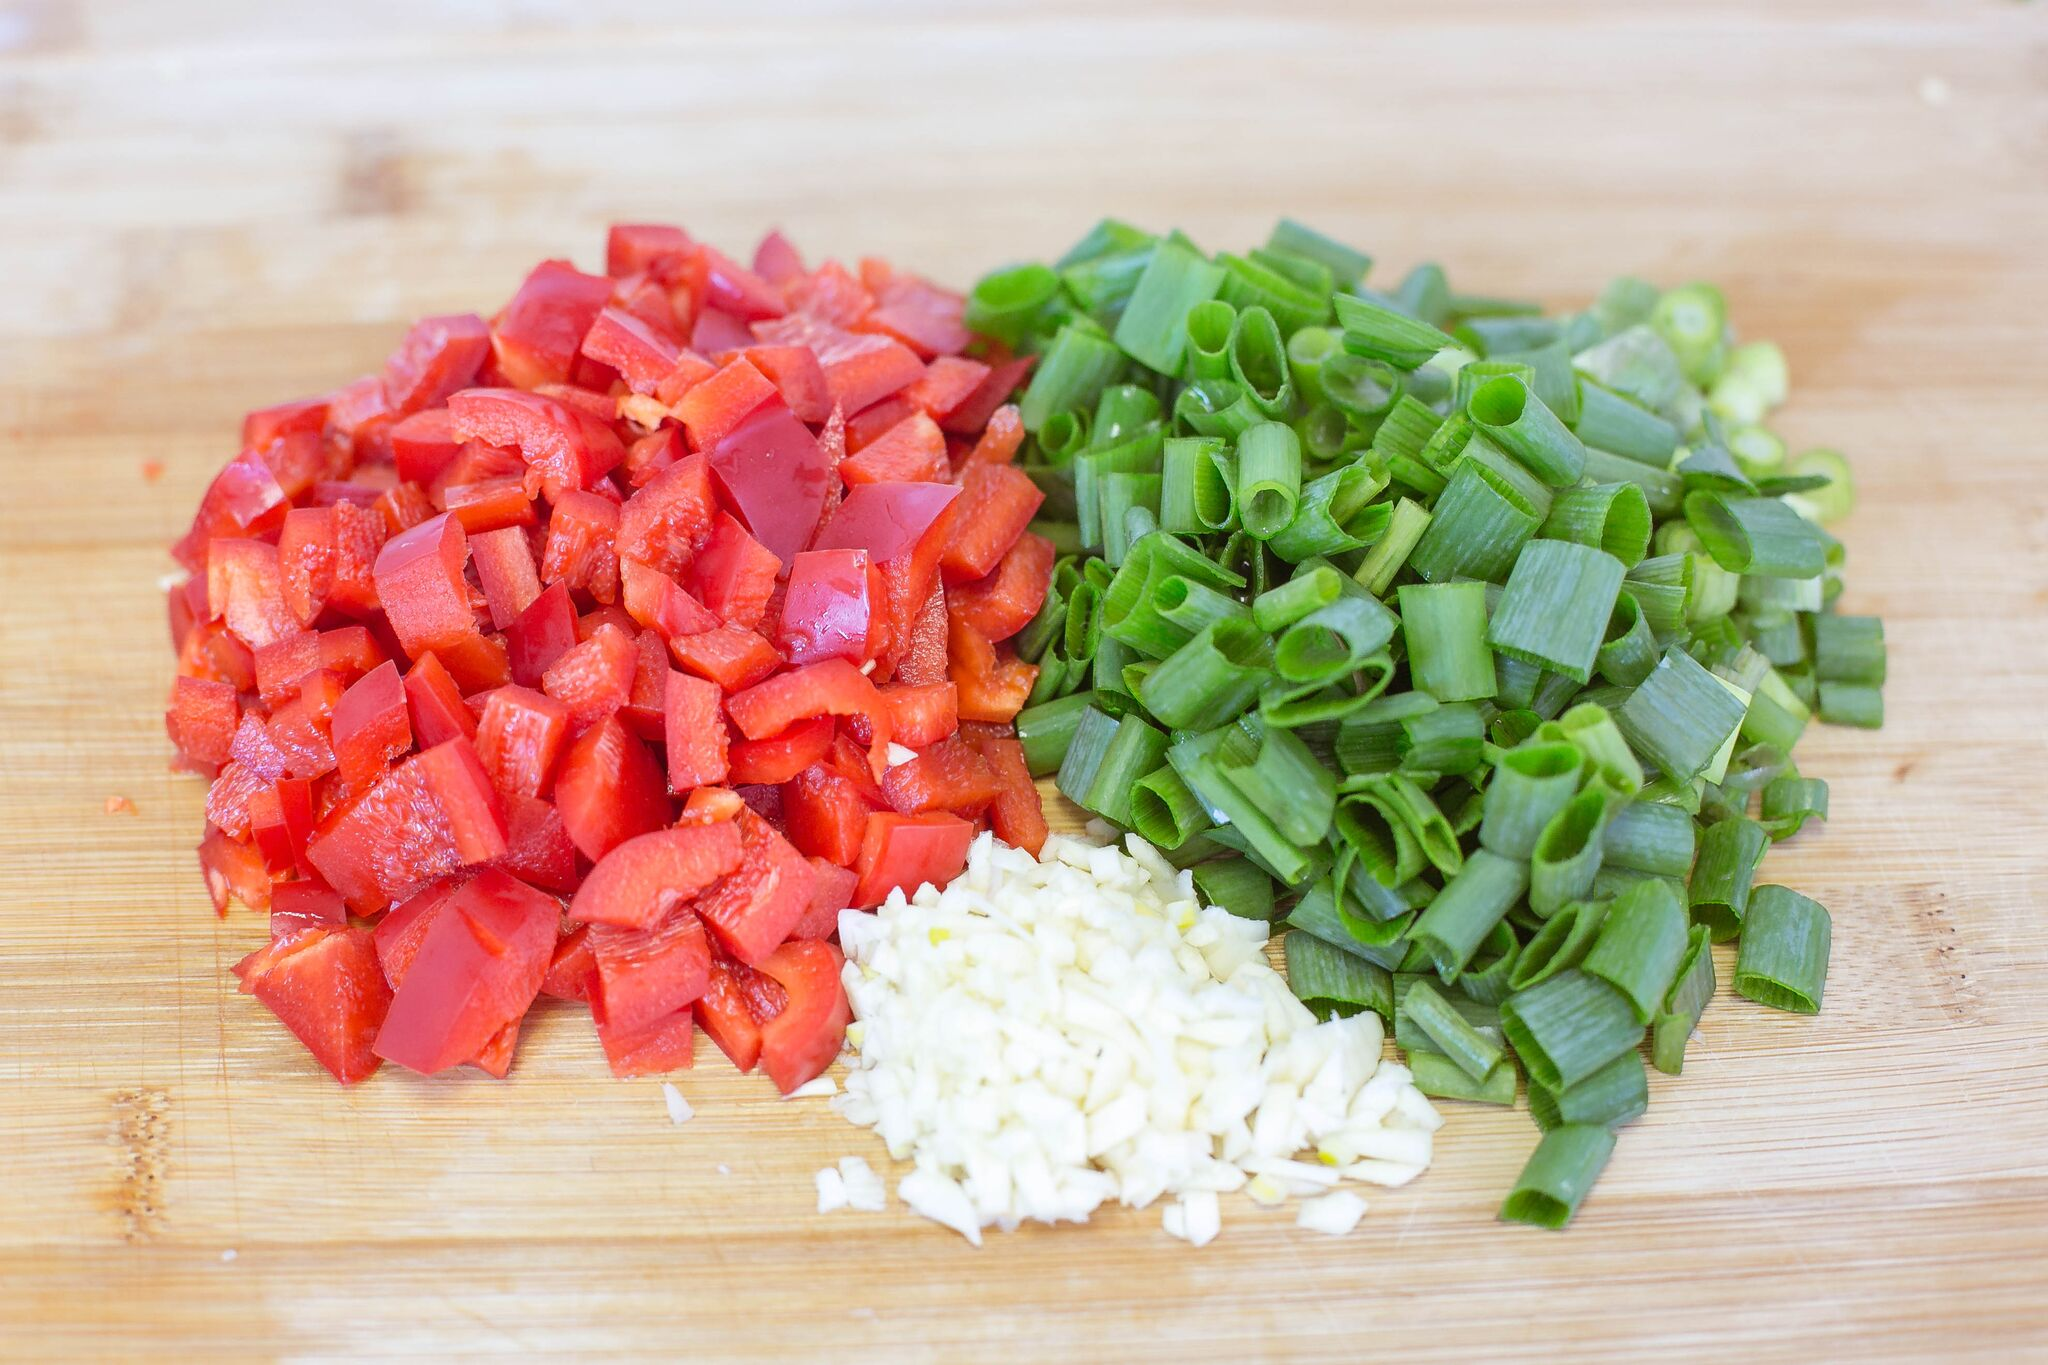 Chop green onions, red pepper and garlic; set aside.